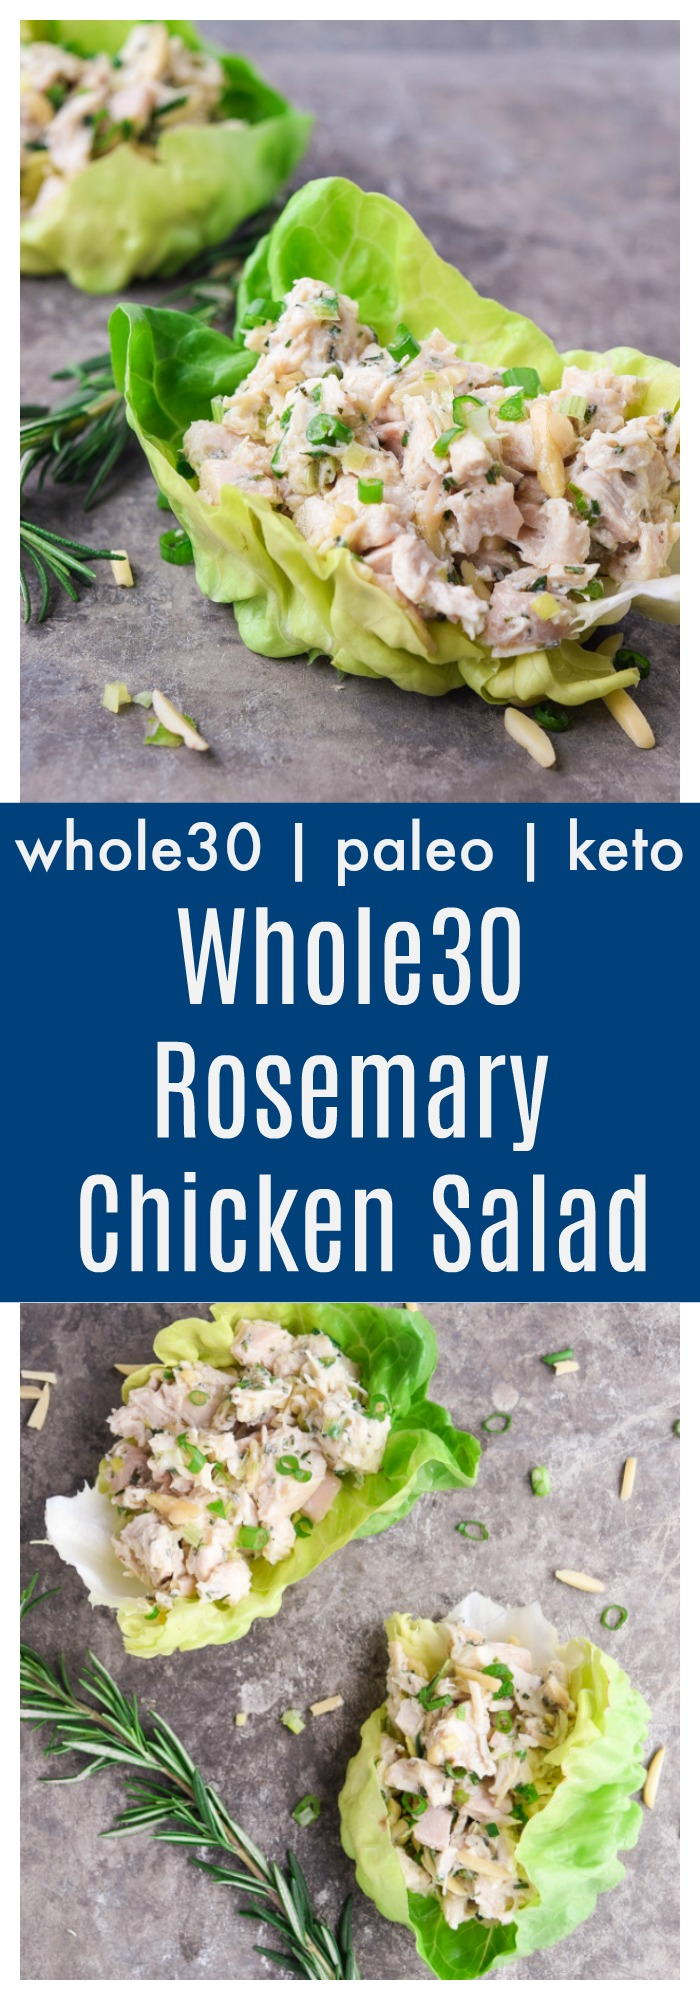 whole30 rosemary chicken salad